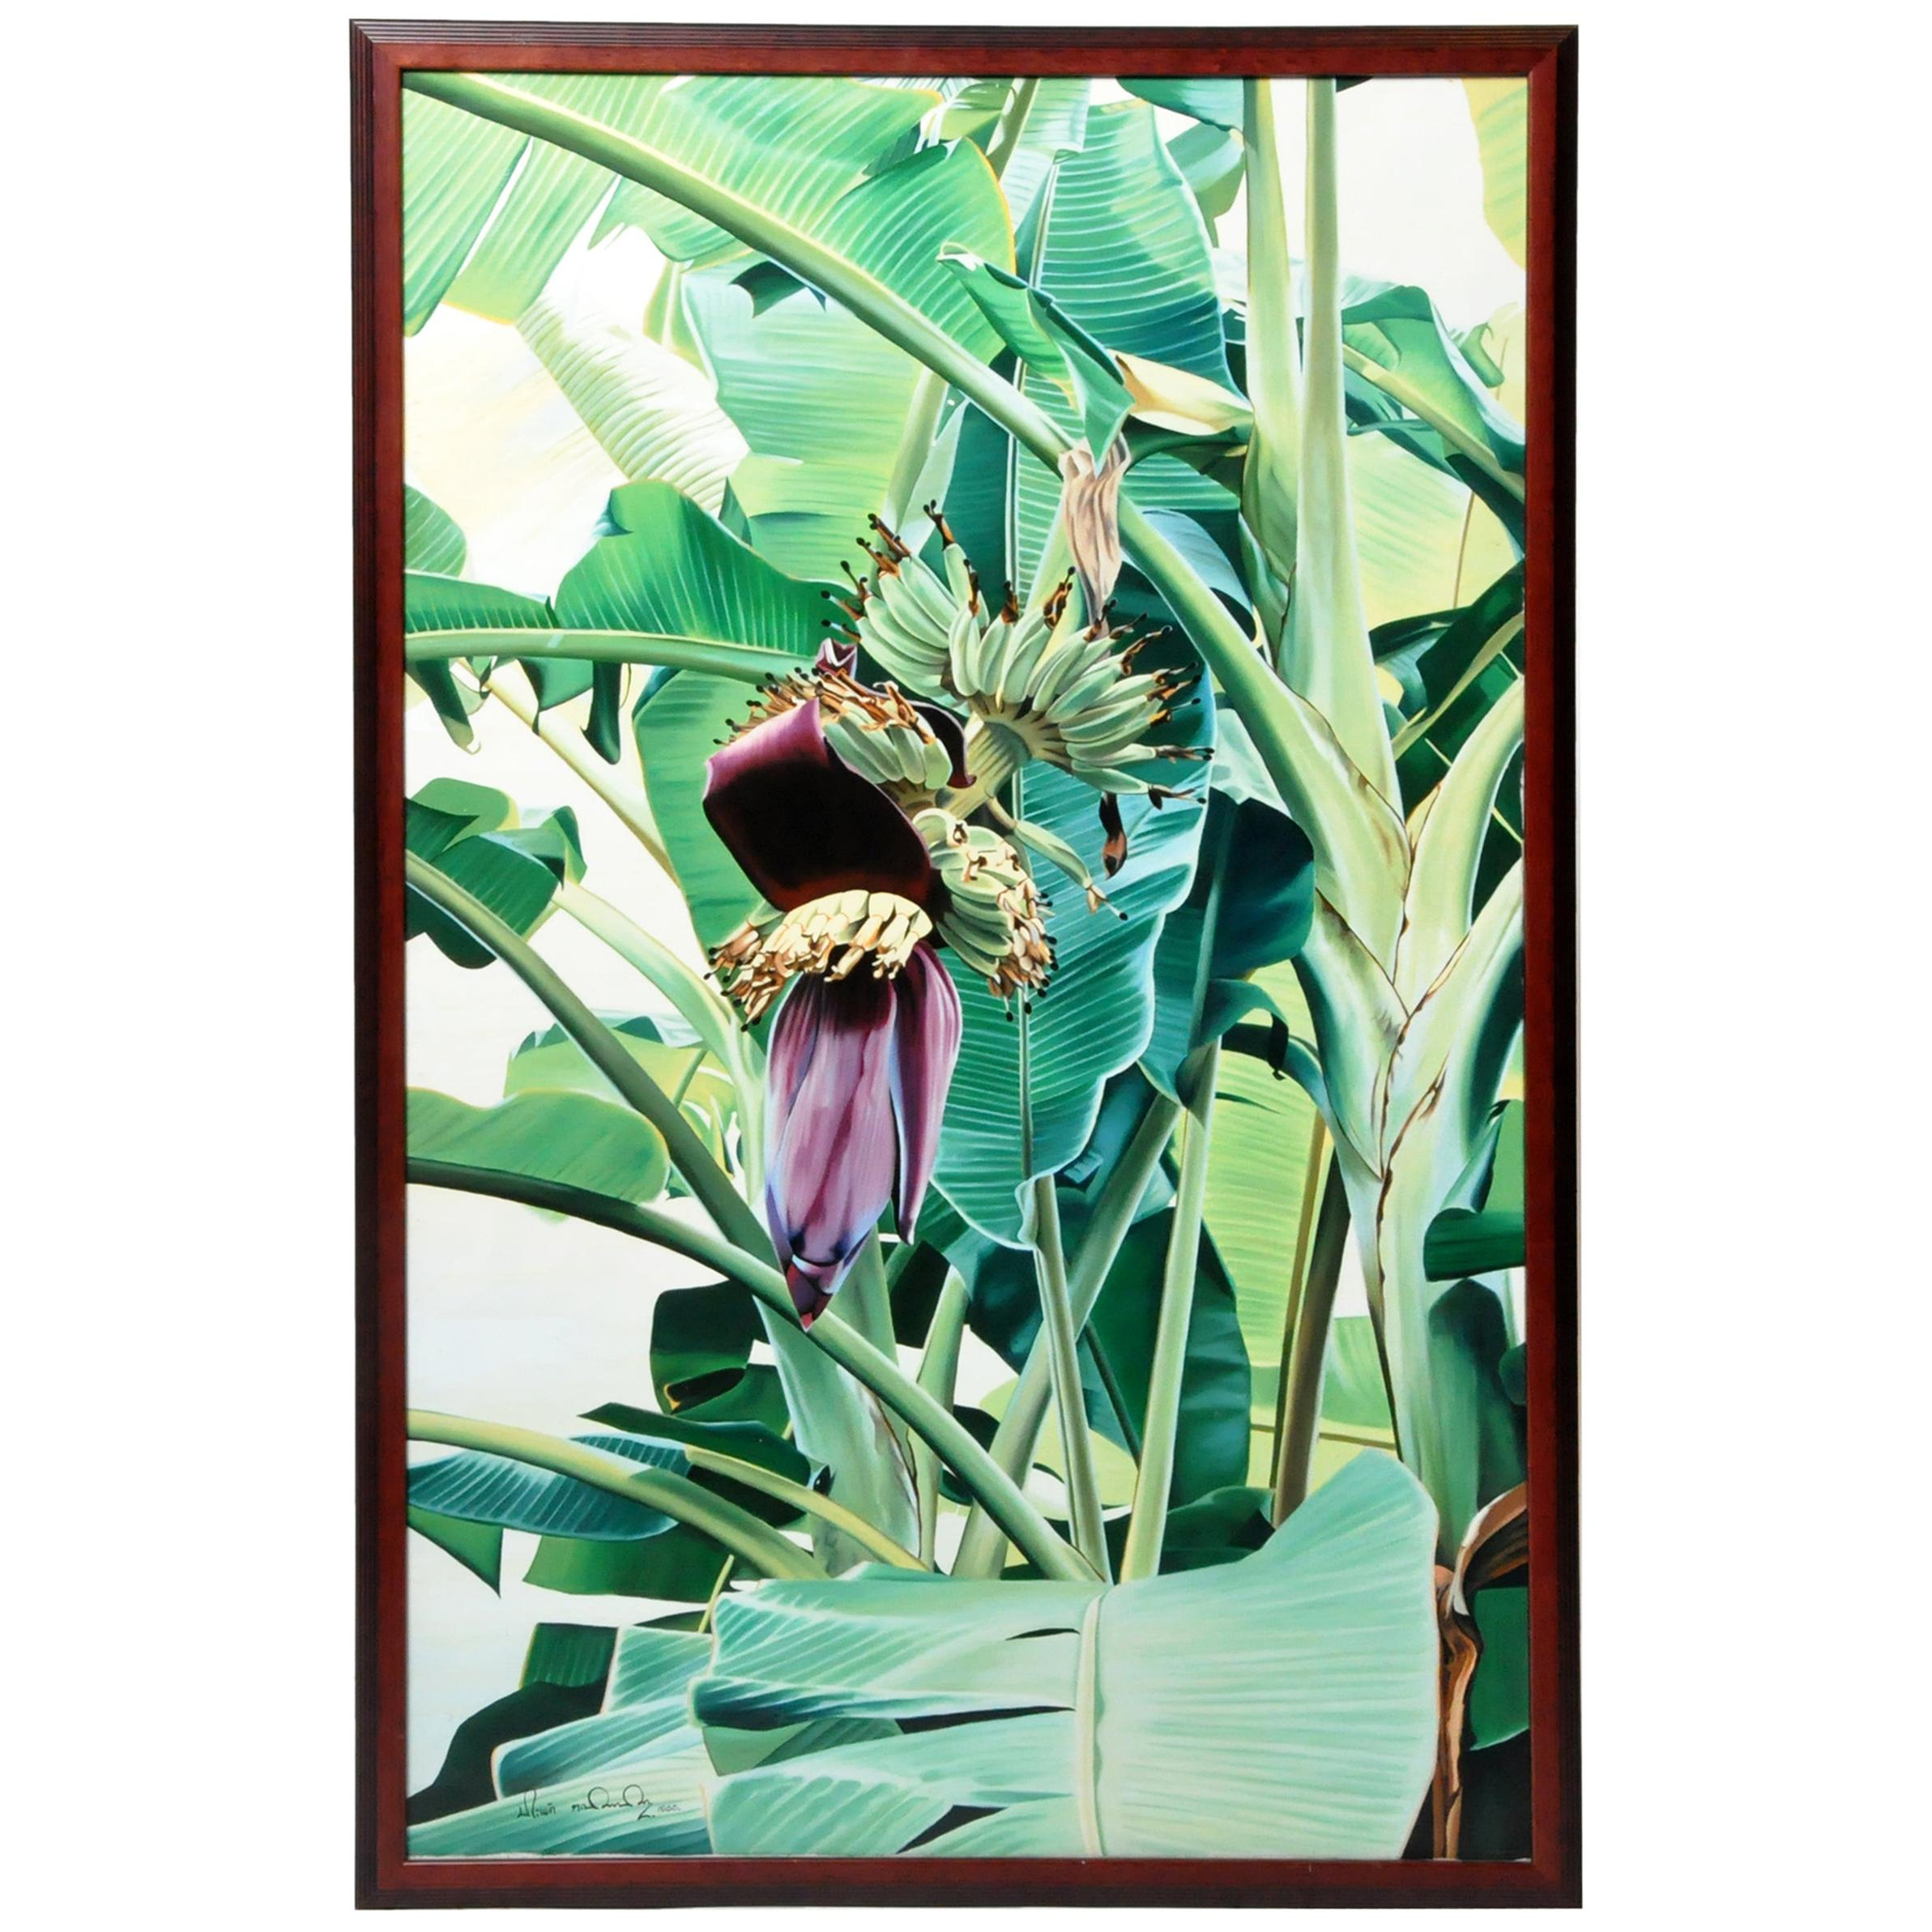 Oil Painting of a Banana Tree in Blossom